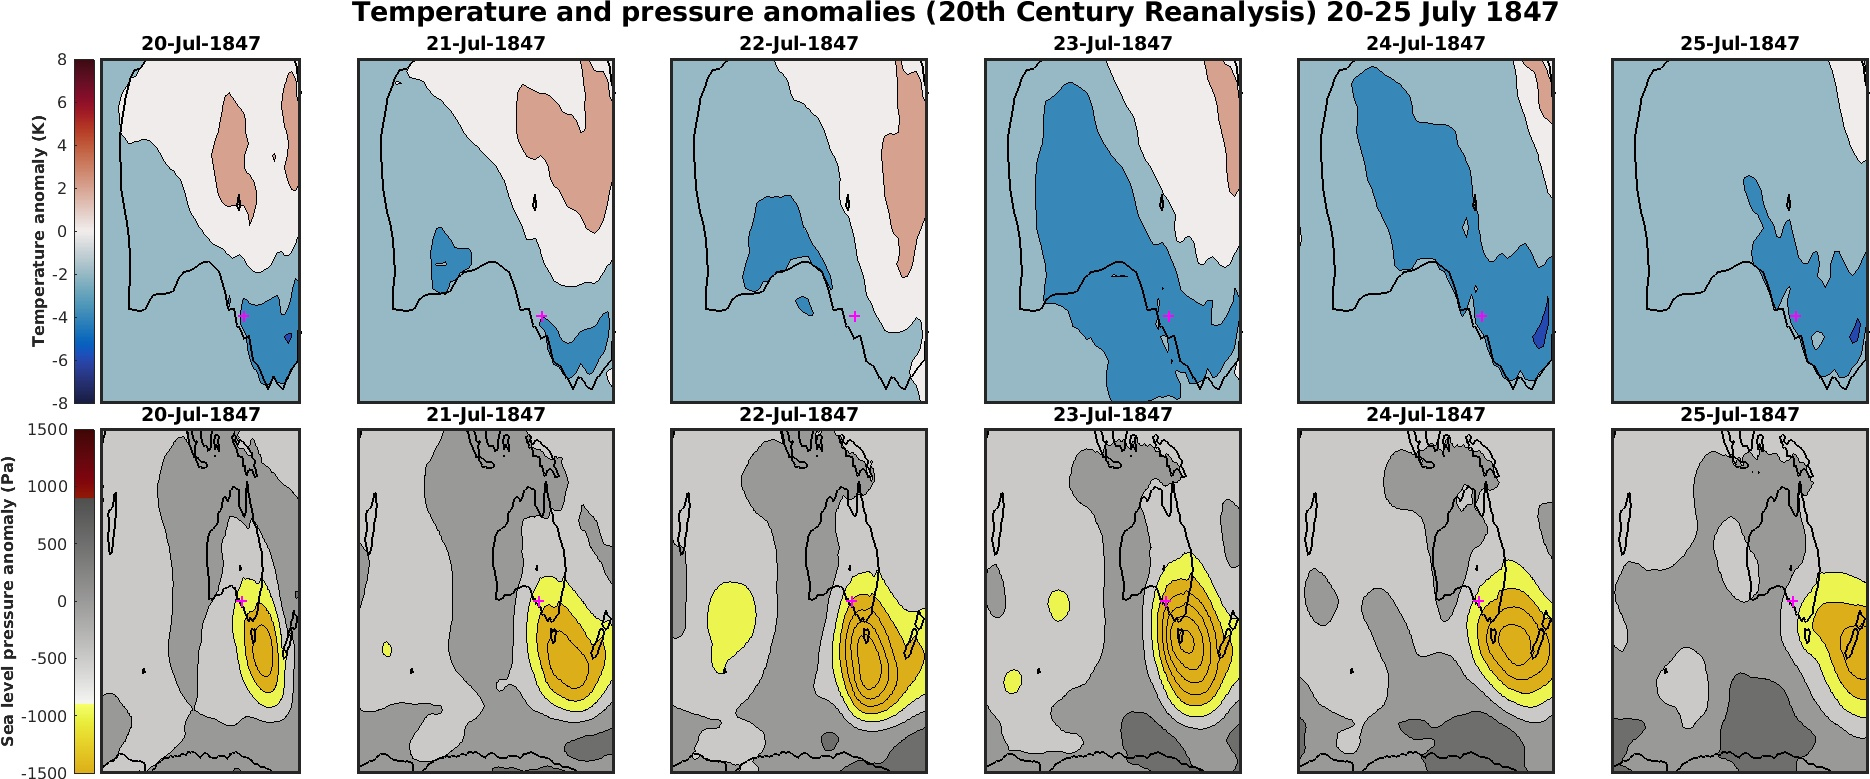 Temperature and pressure anomalies across Adelaide in July 1847.